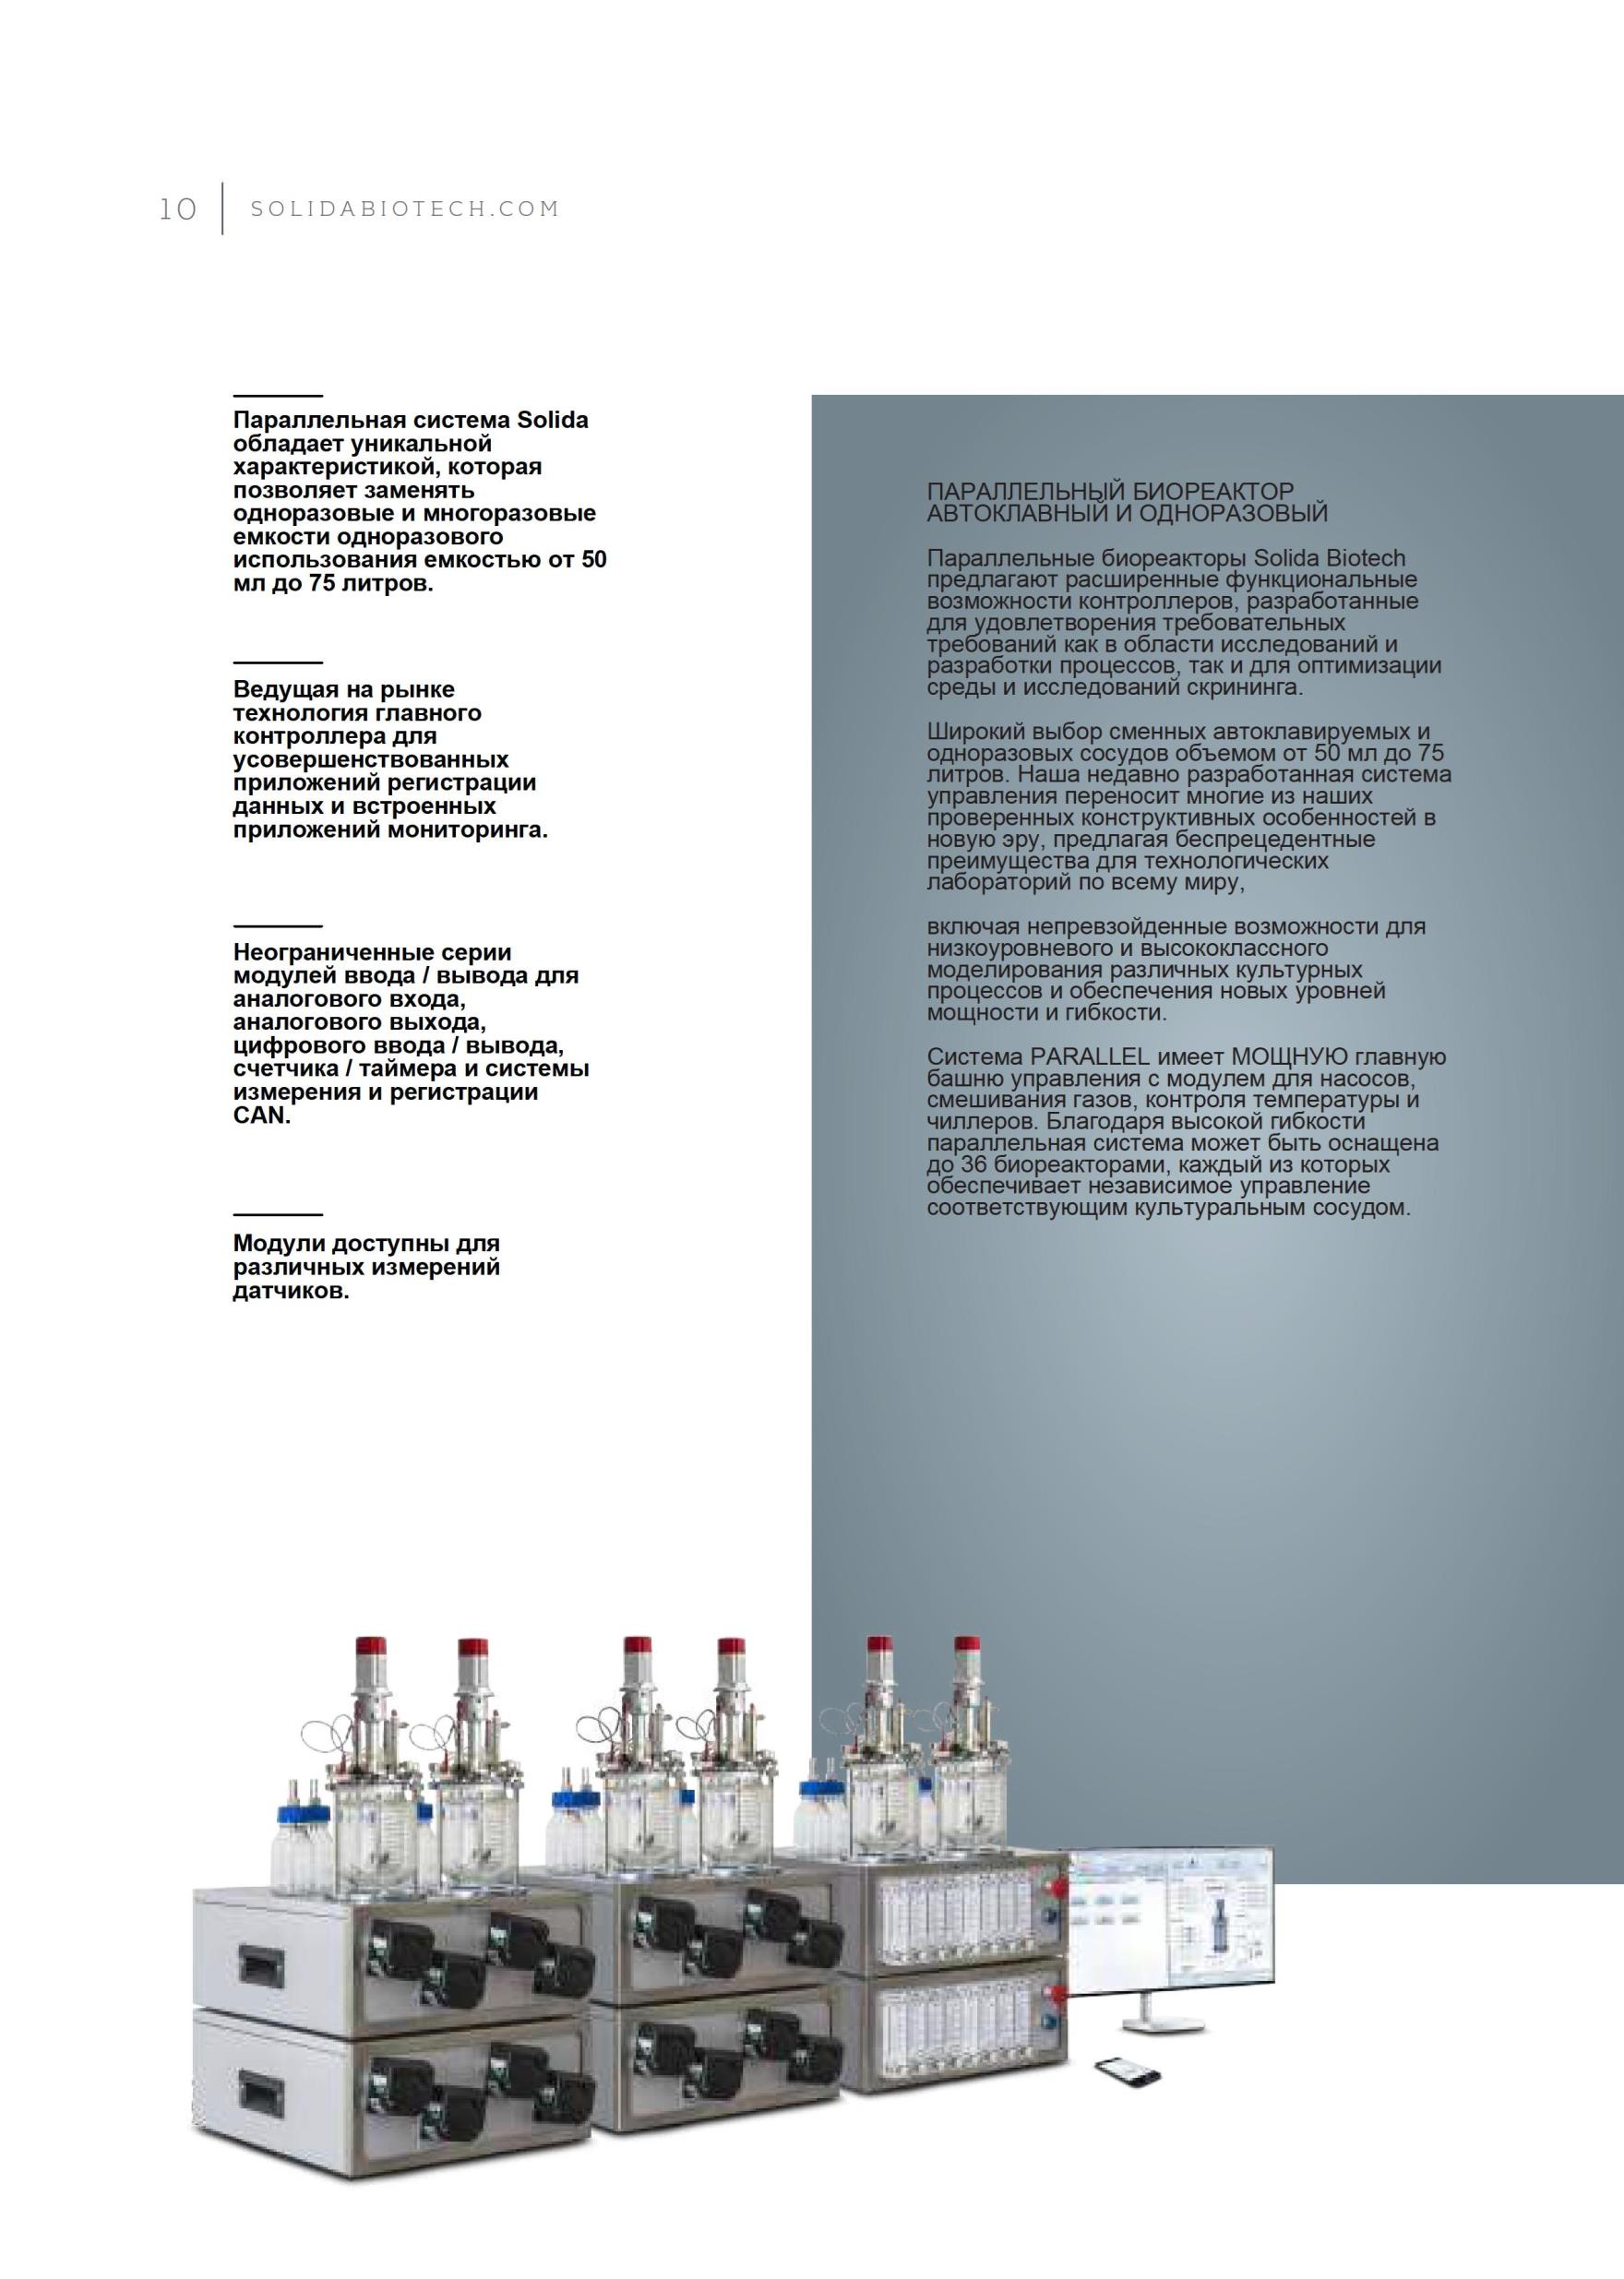 General Catalogue Solida Biotech GmBH2_compressed (2 - 0008